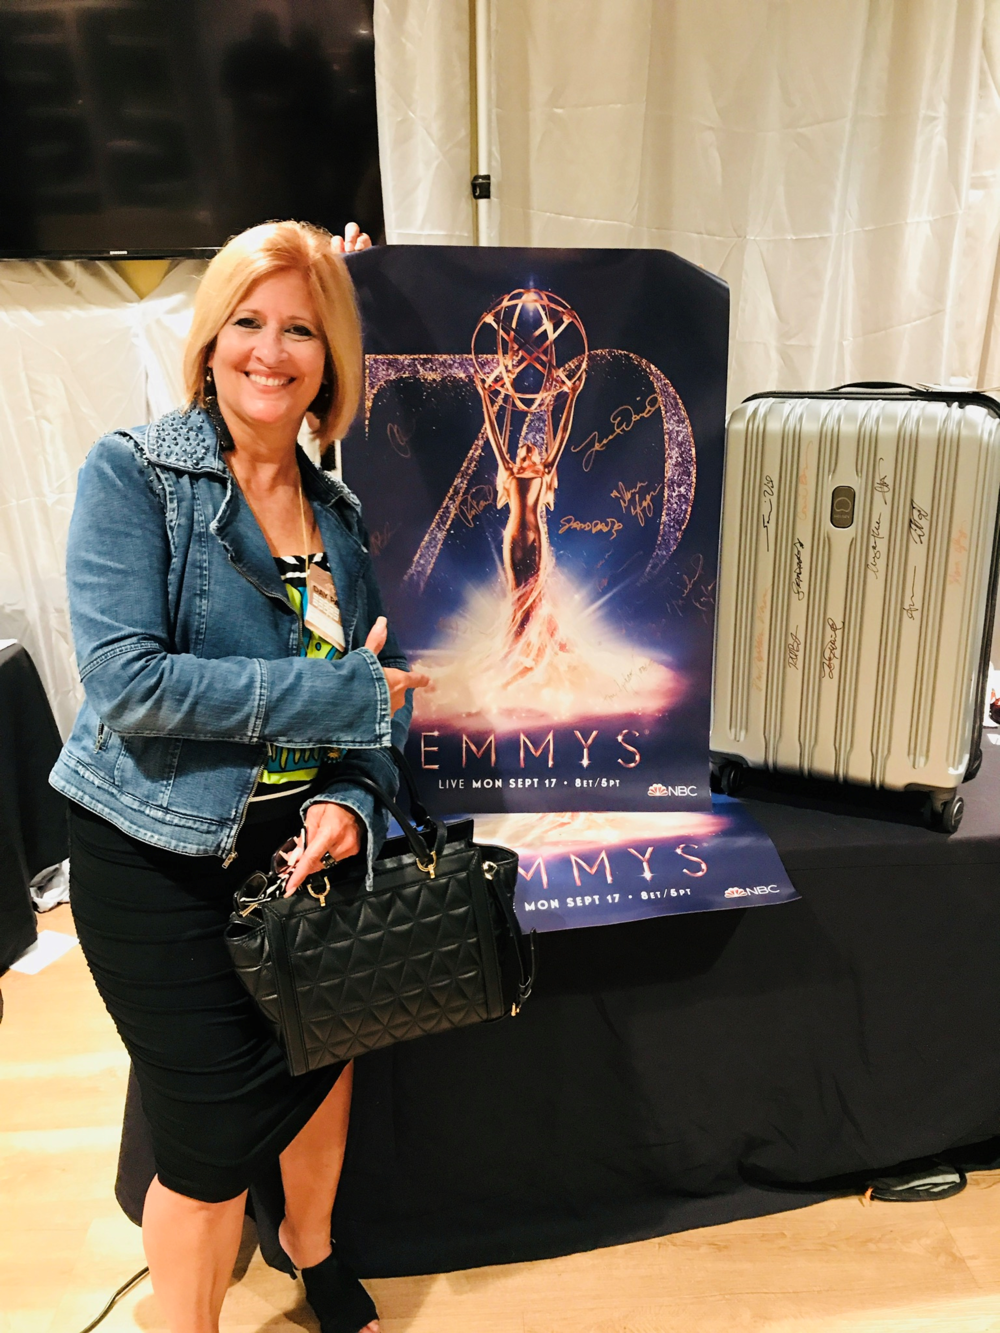 Assessing backstage at the 2018 Emmy Awards, Microsoft Theatre with backstage pass to preview exhibit area. (Not a sponsor).